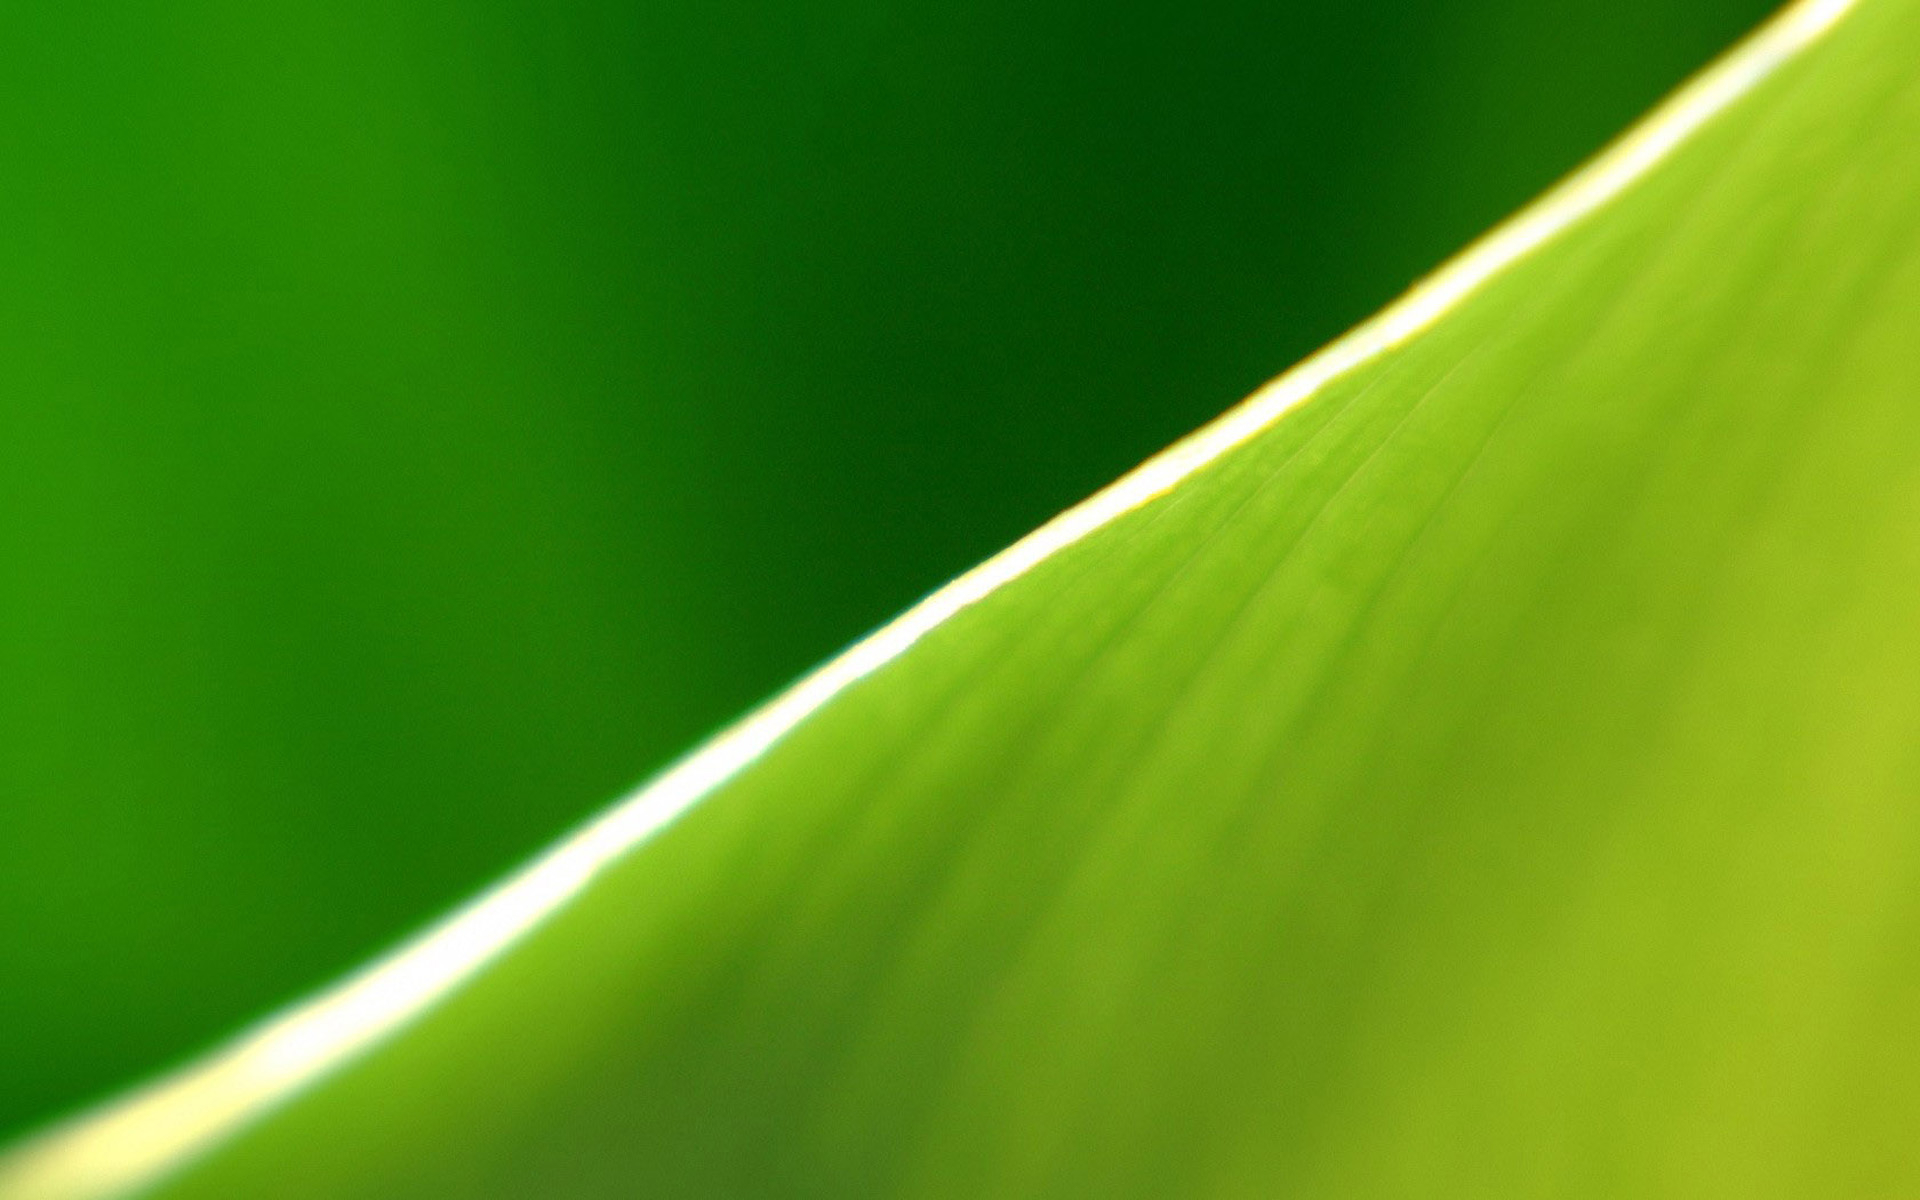 Full Screen Desktop Fall Wallpaper Banana Leaf Wallpapers Hd Pixelstalk Net